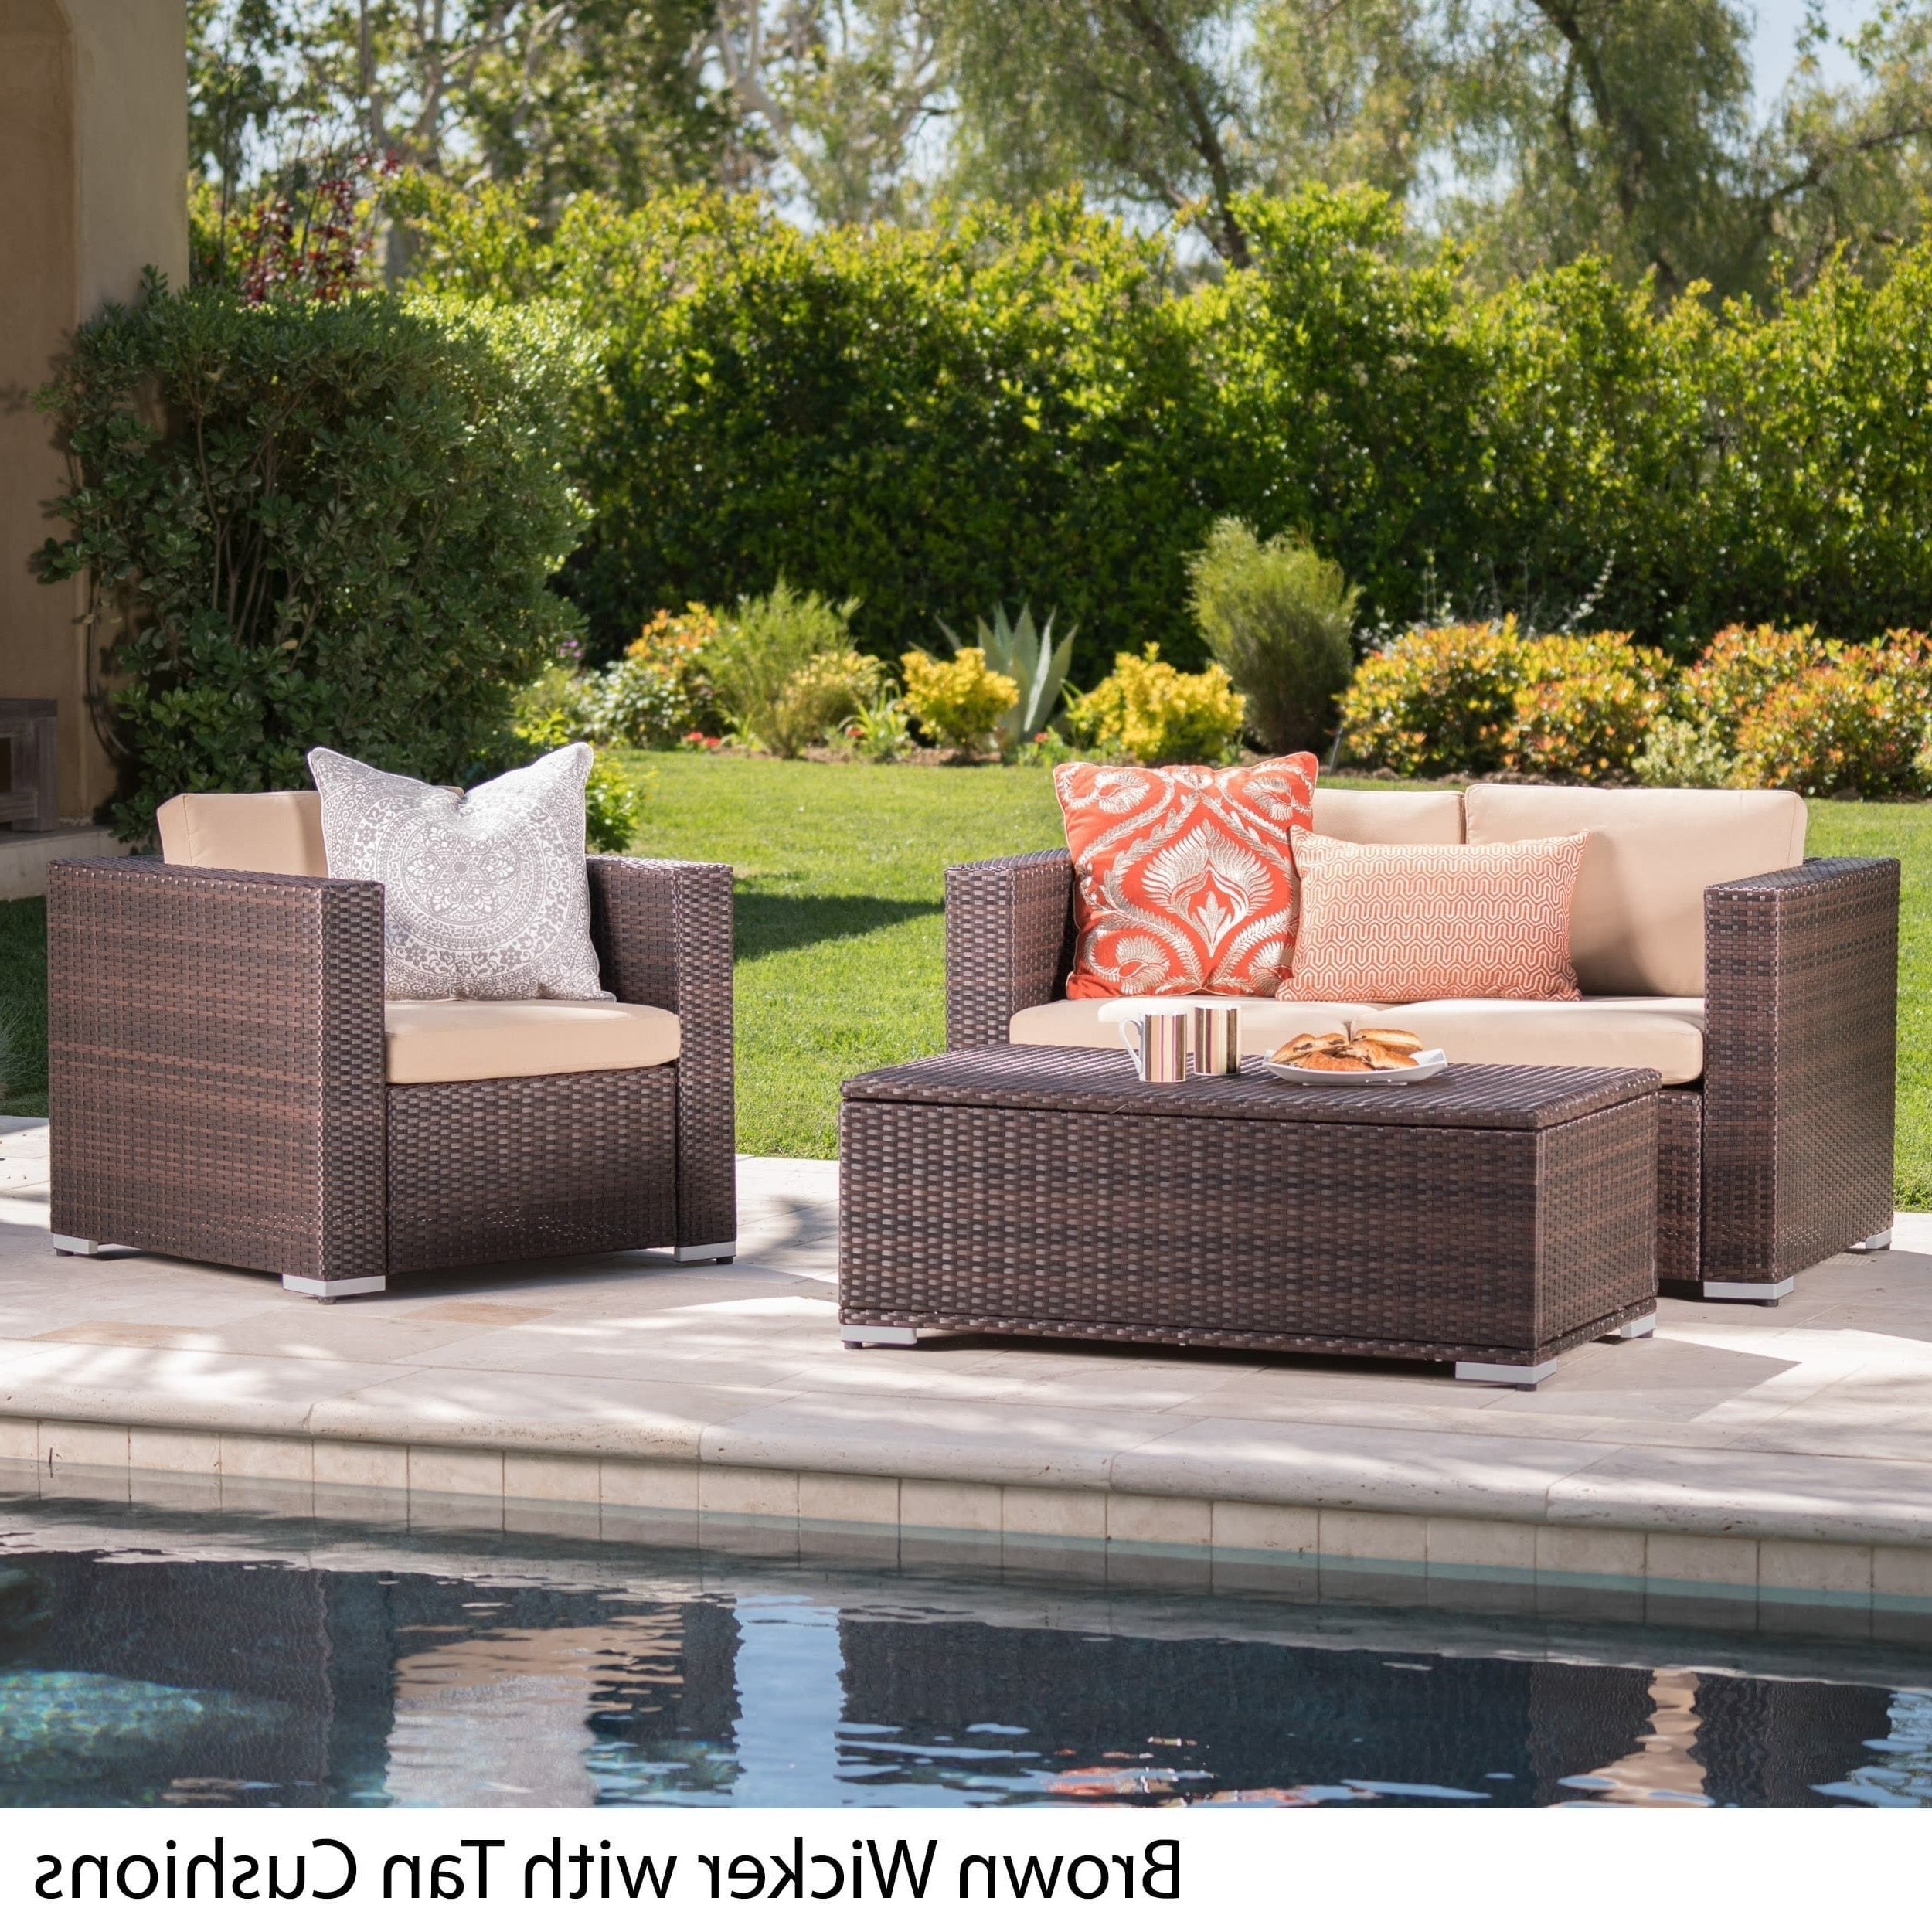 Well Liked Murano Outdoor 3 Piece Wicker Chat Set With Cushions And Storage With Patio Conversation Set With Storage (View 16 of 20)